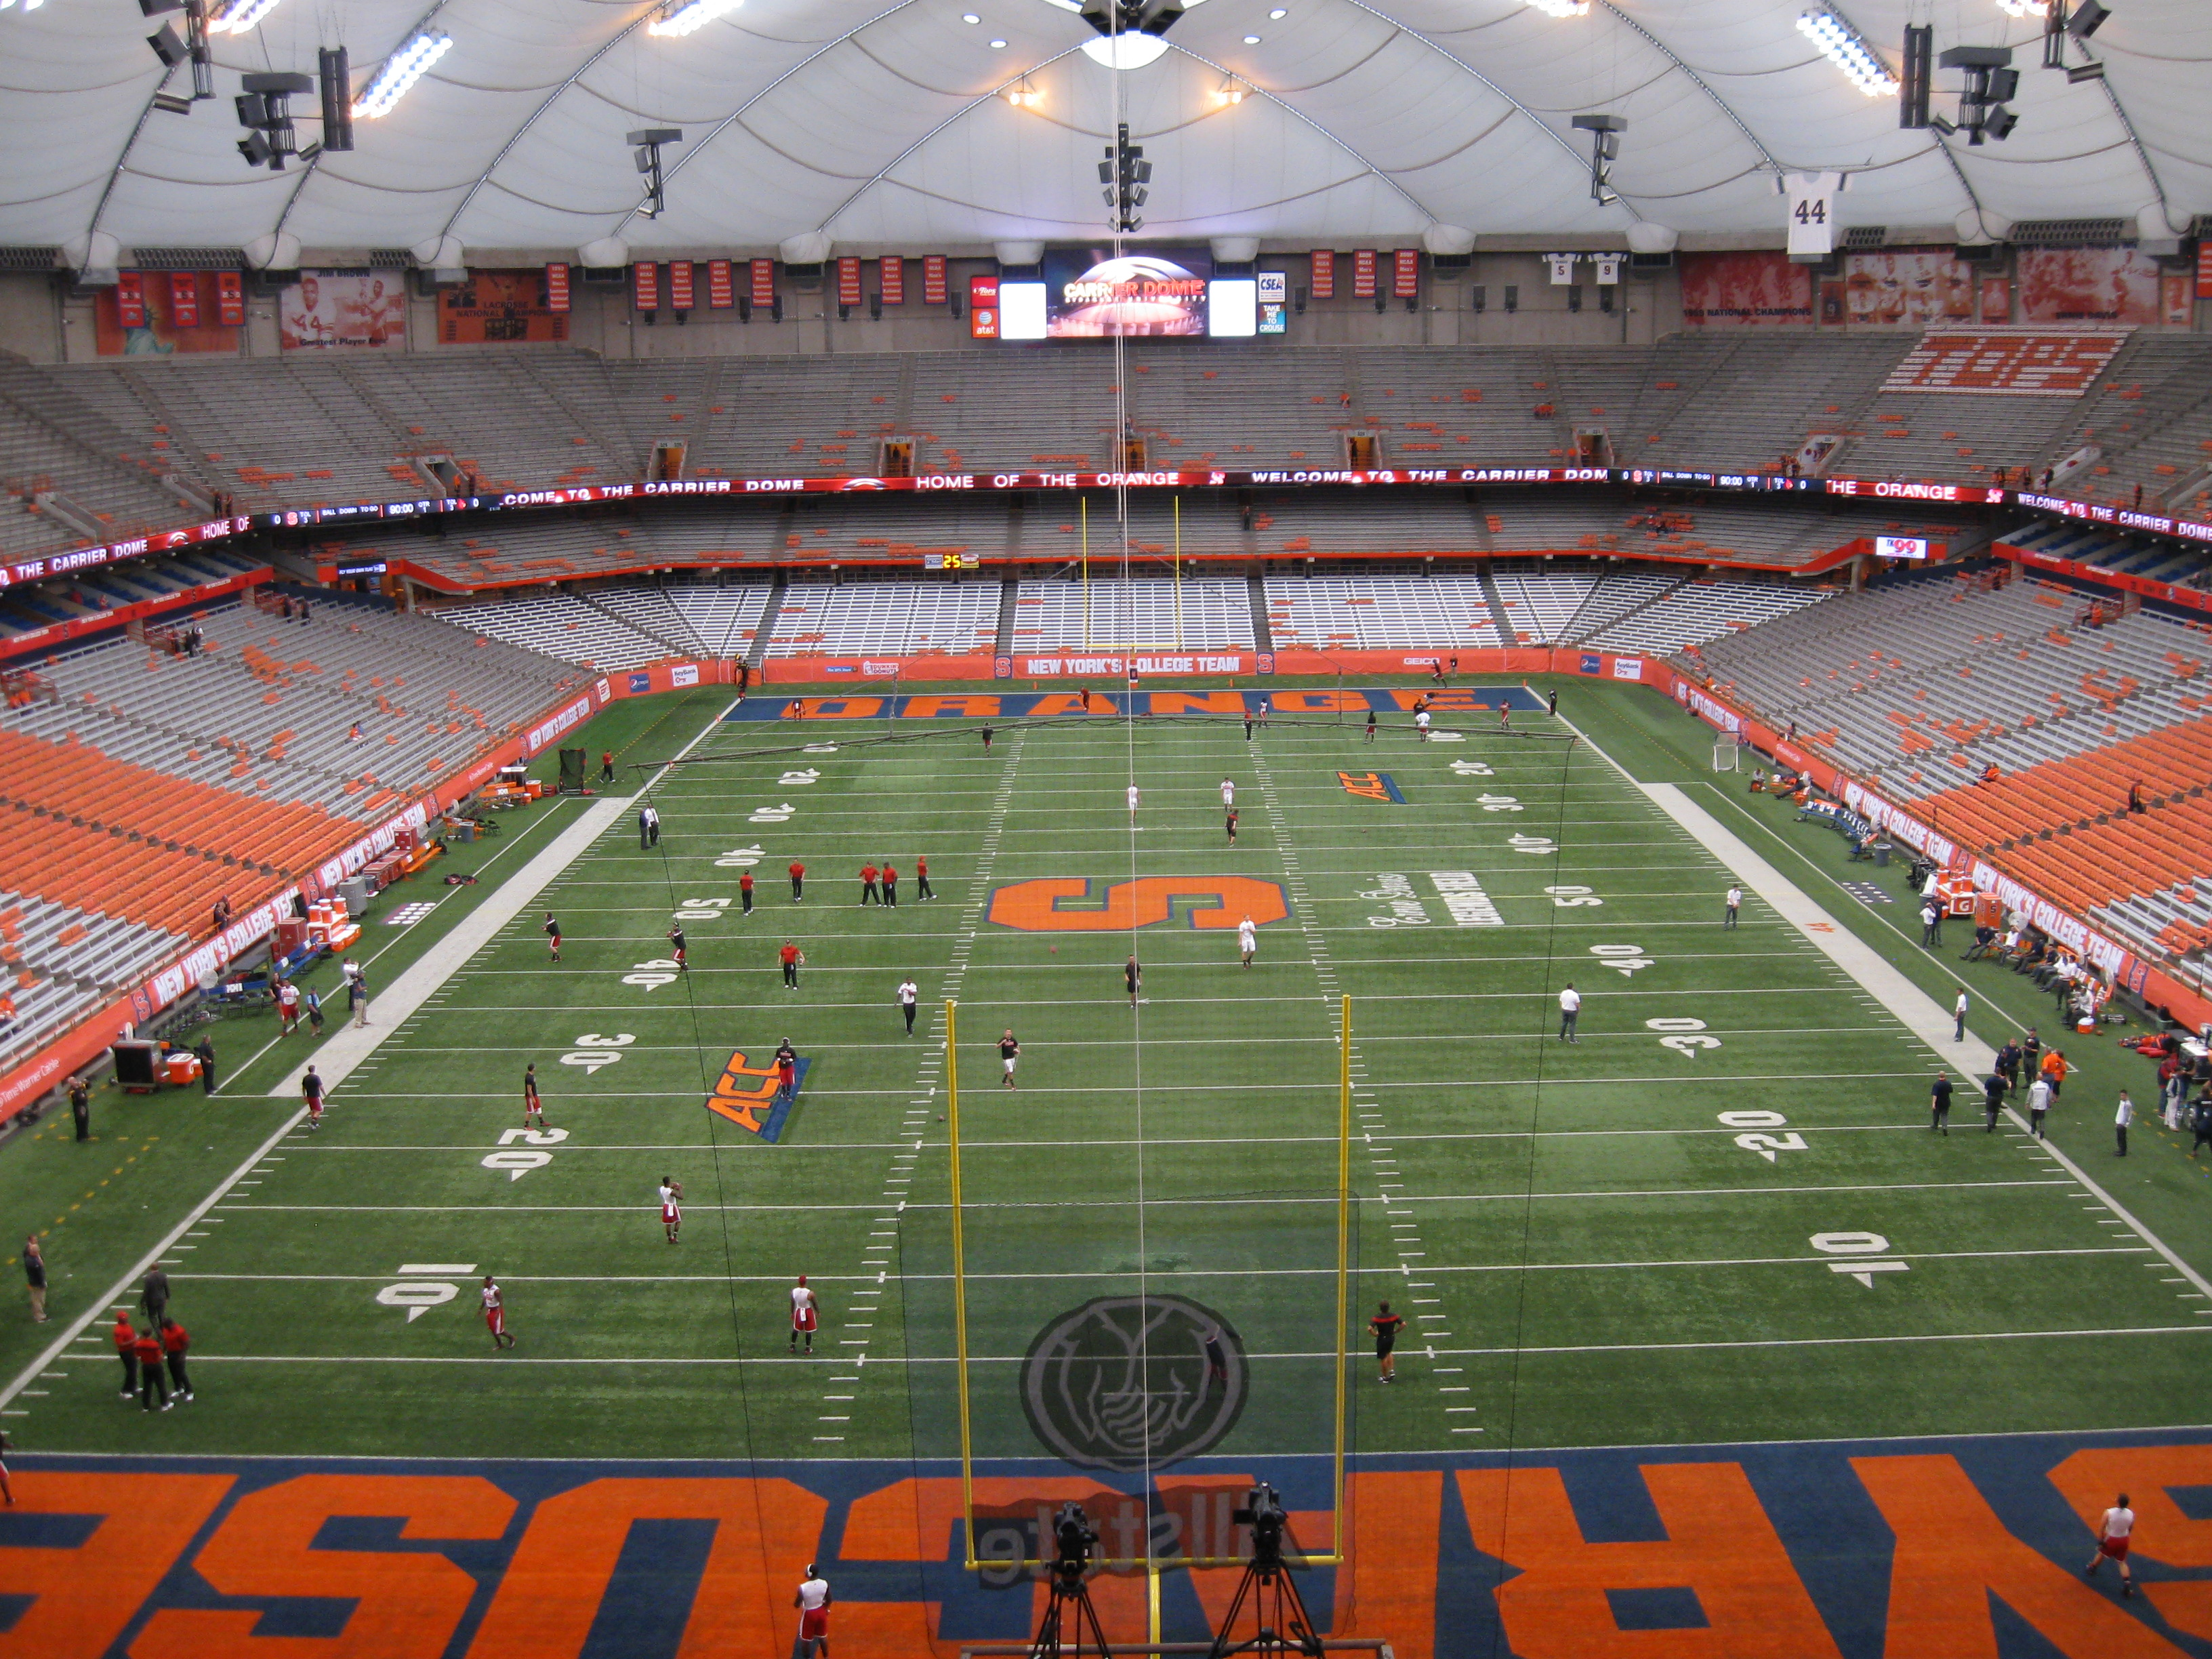 05 Carrier Dome 171 Stadium And Arena Visits